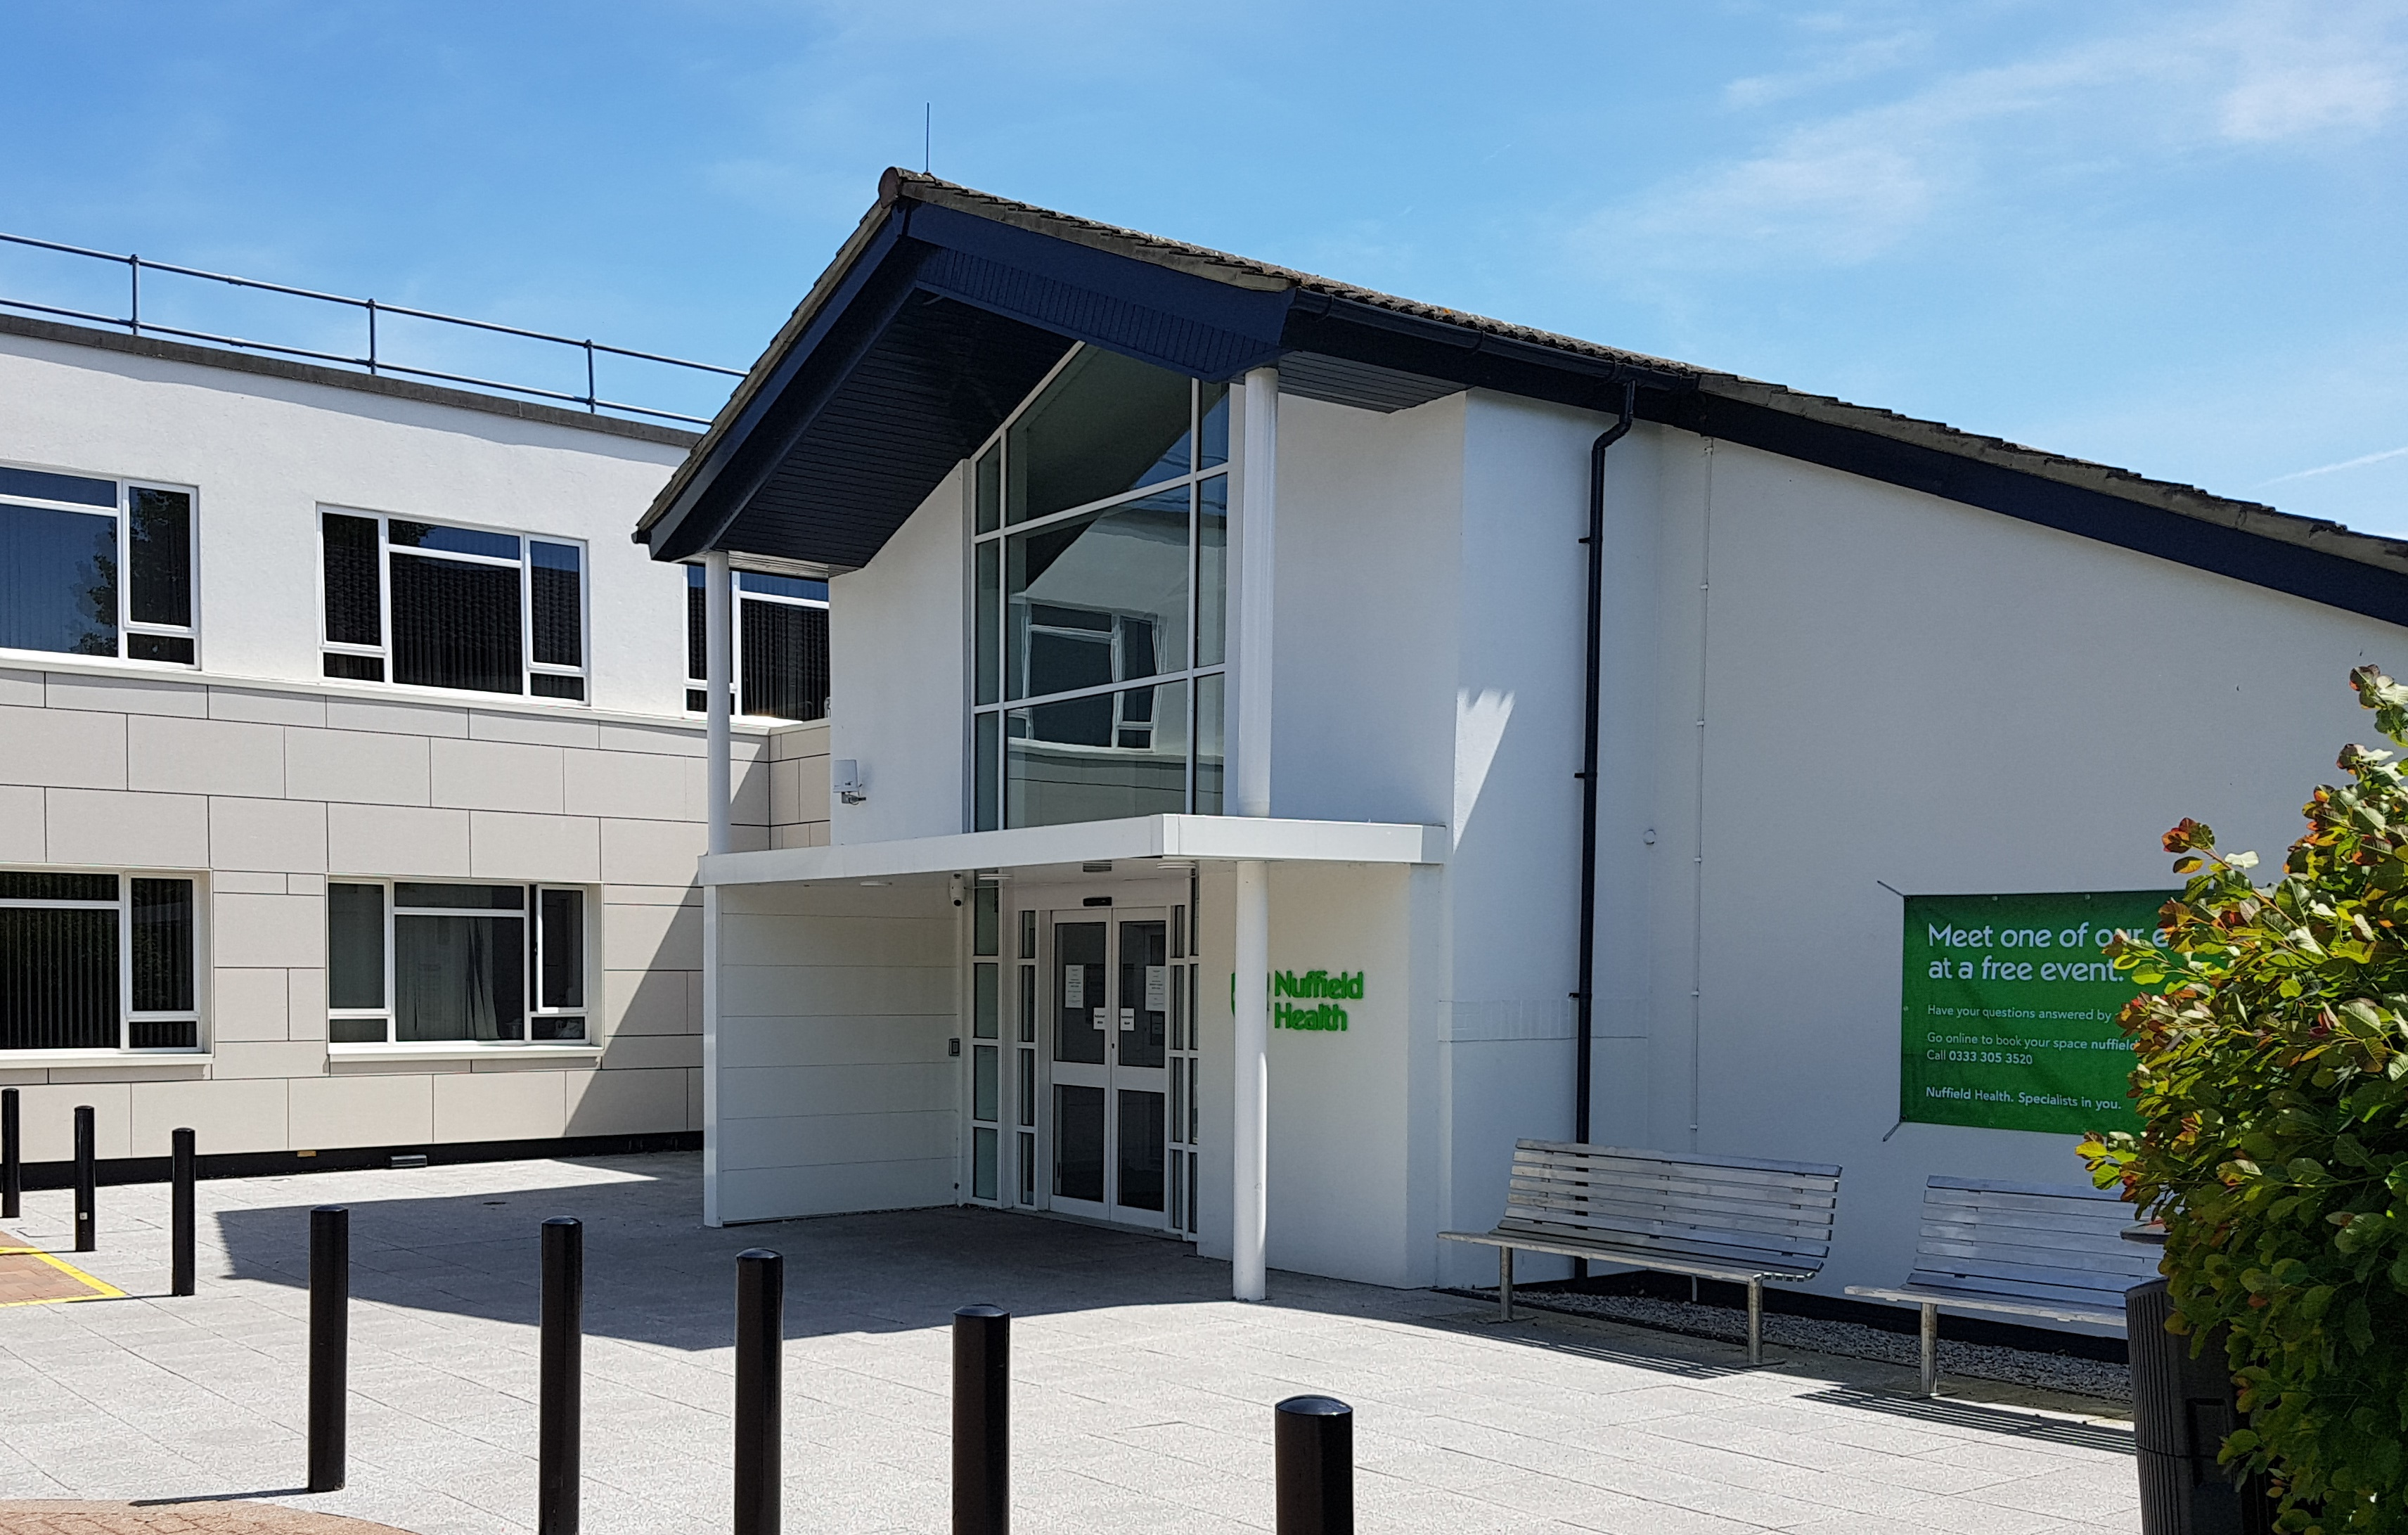 Nuffield Health Brentwood Hospital in Essex